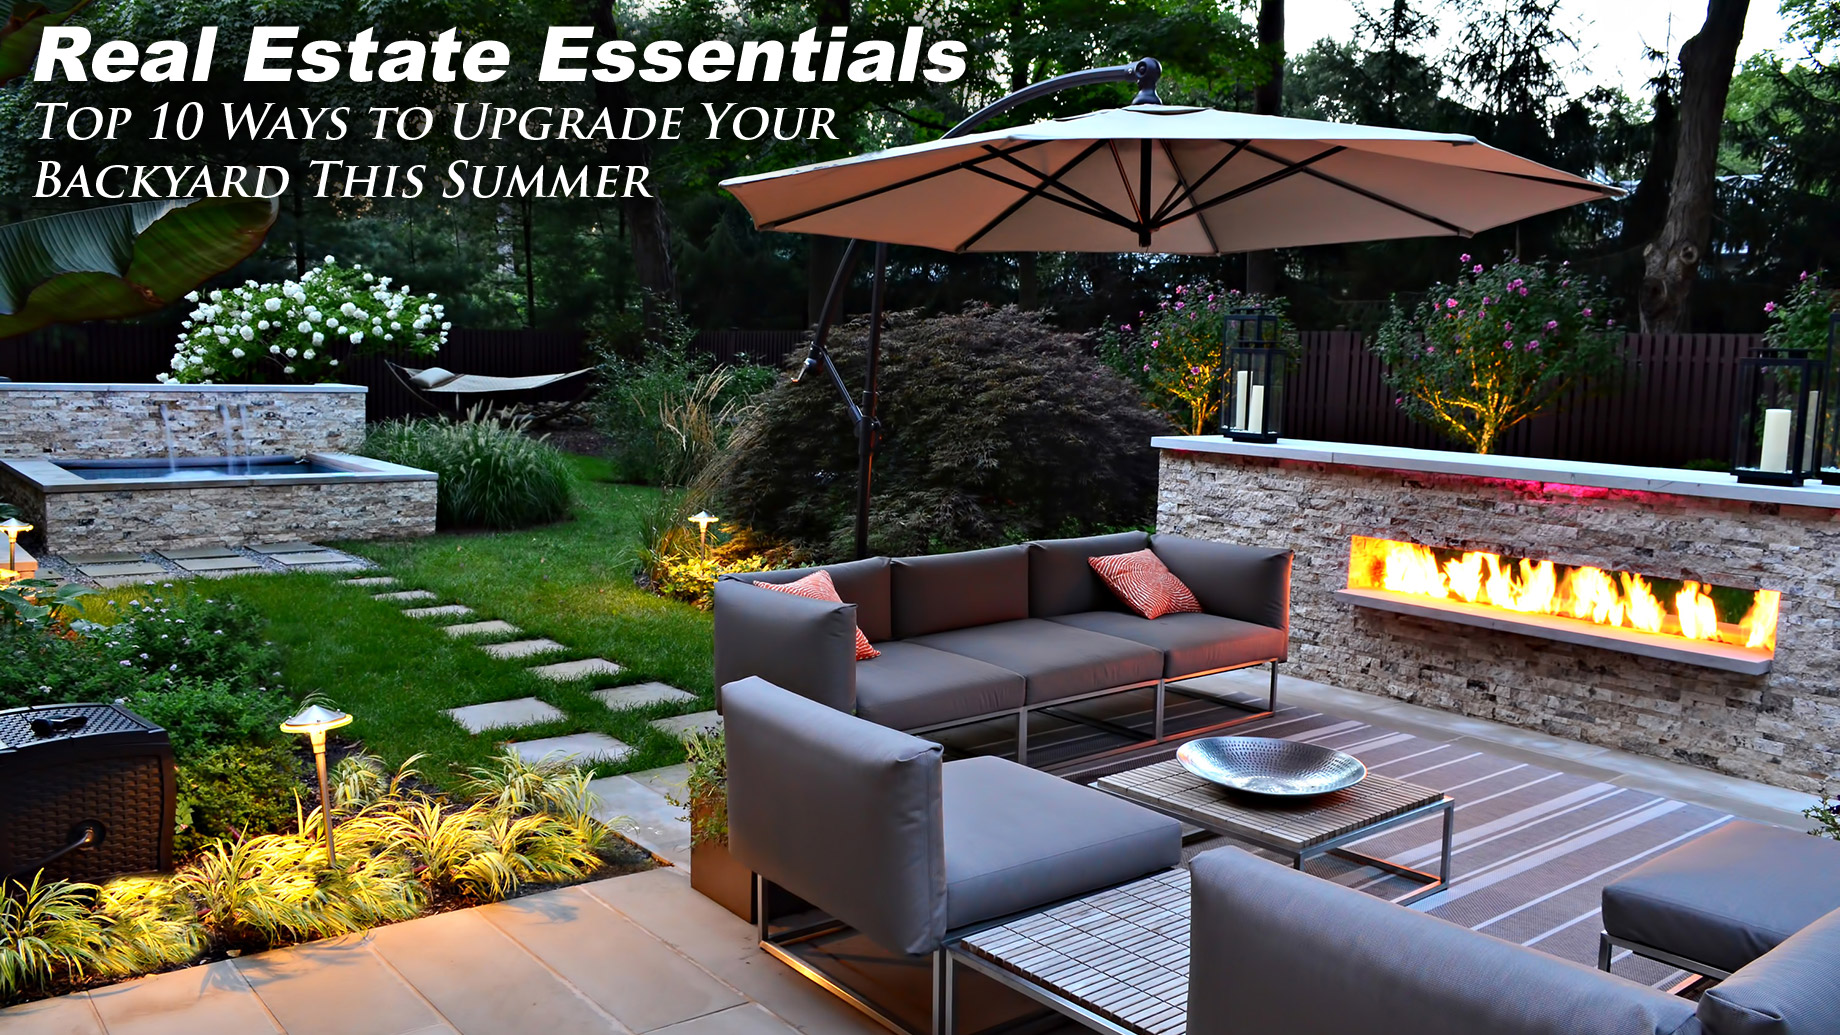 Real Estate Essentials - Top 10 Ways to Upgrade Your Backyard This Summer